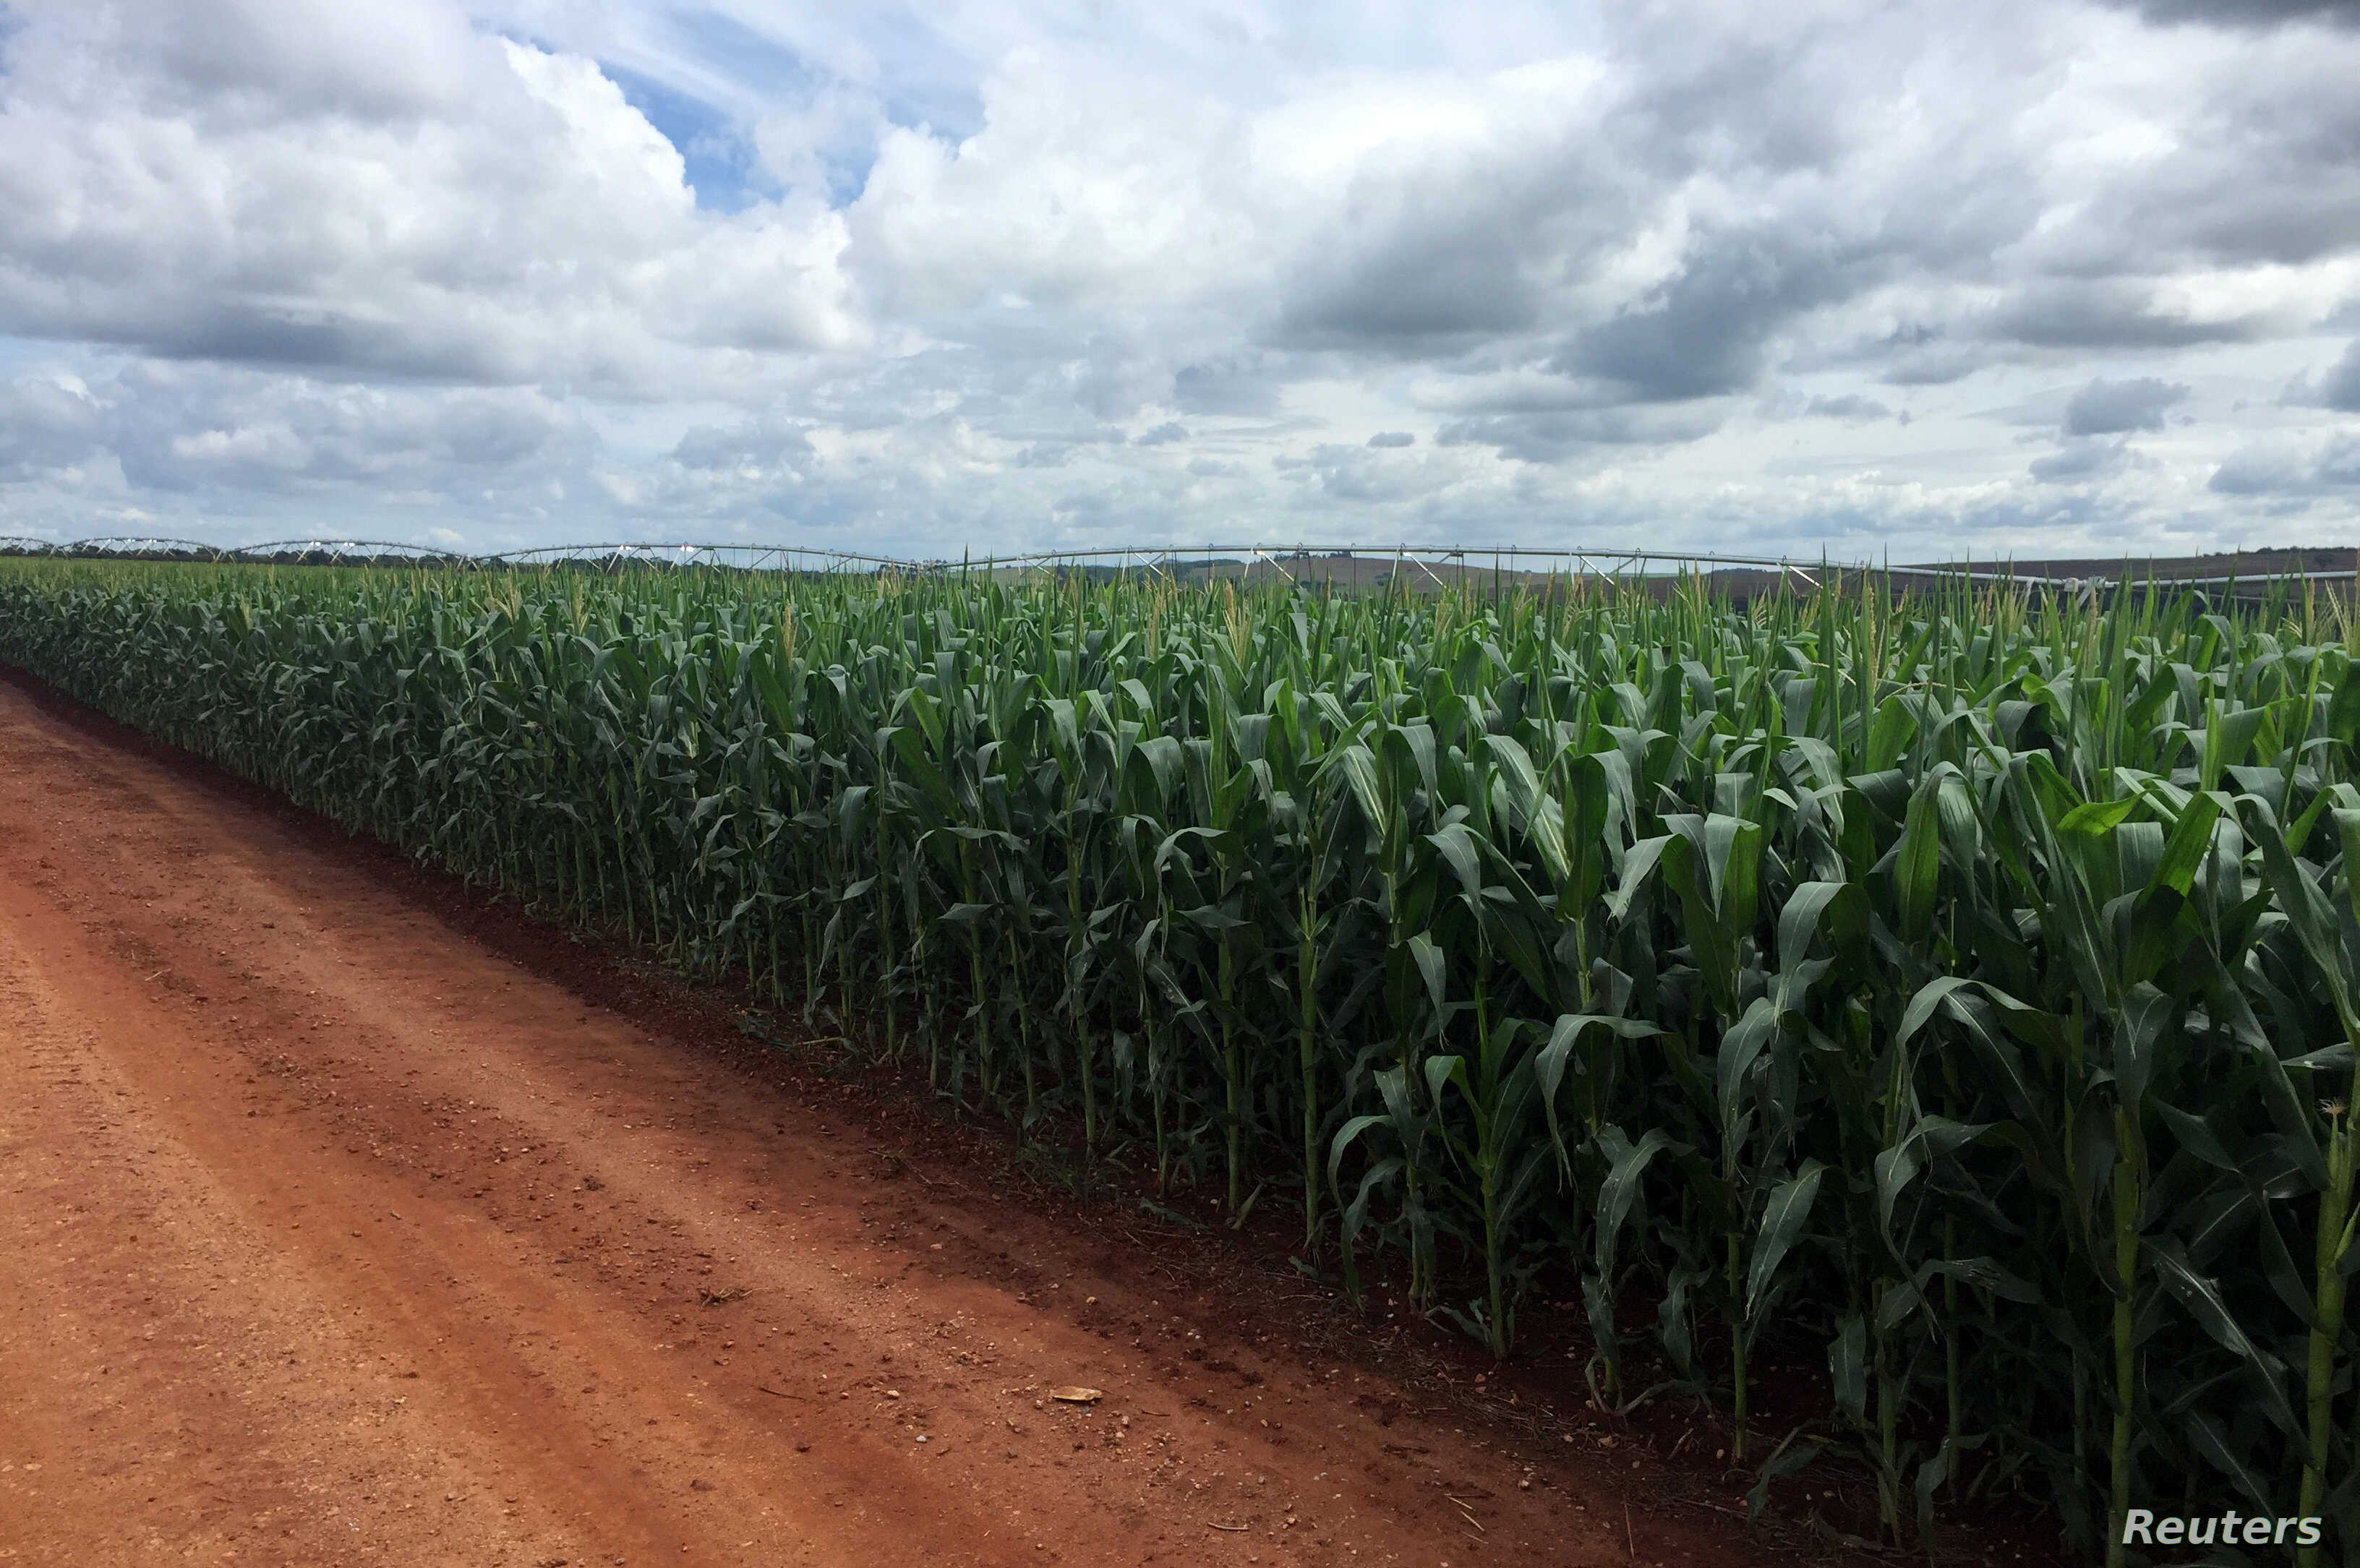 A corn crop is seen at Cercado Grande farm, where expansion of grains cultivation led the farm to scrap a contract with a sugar mill for cane planting in Itajai, Sao Paulo state, Brazil, April 1, 2018.